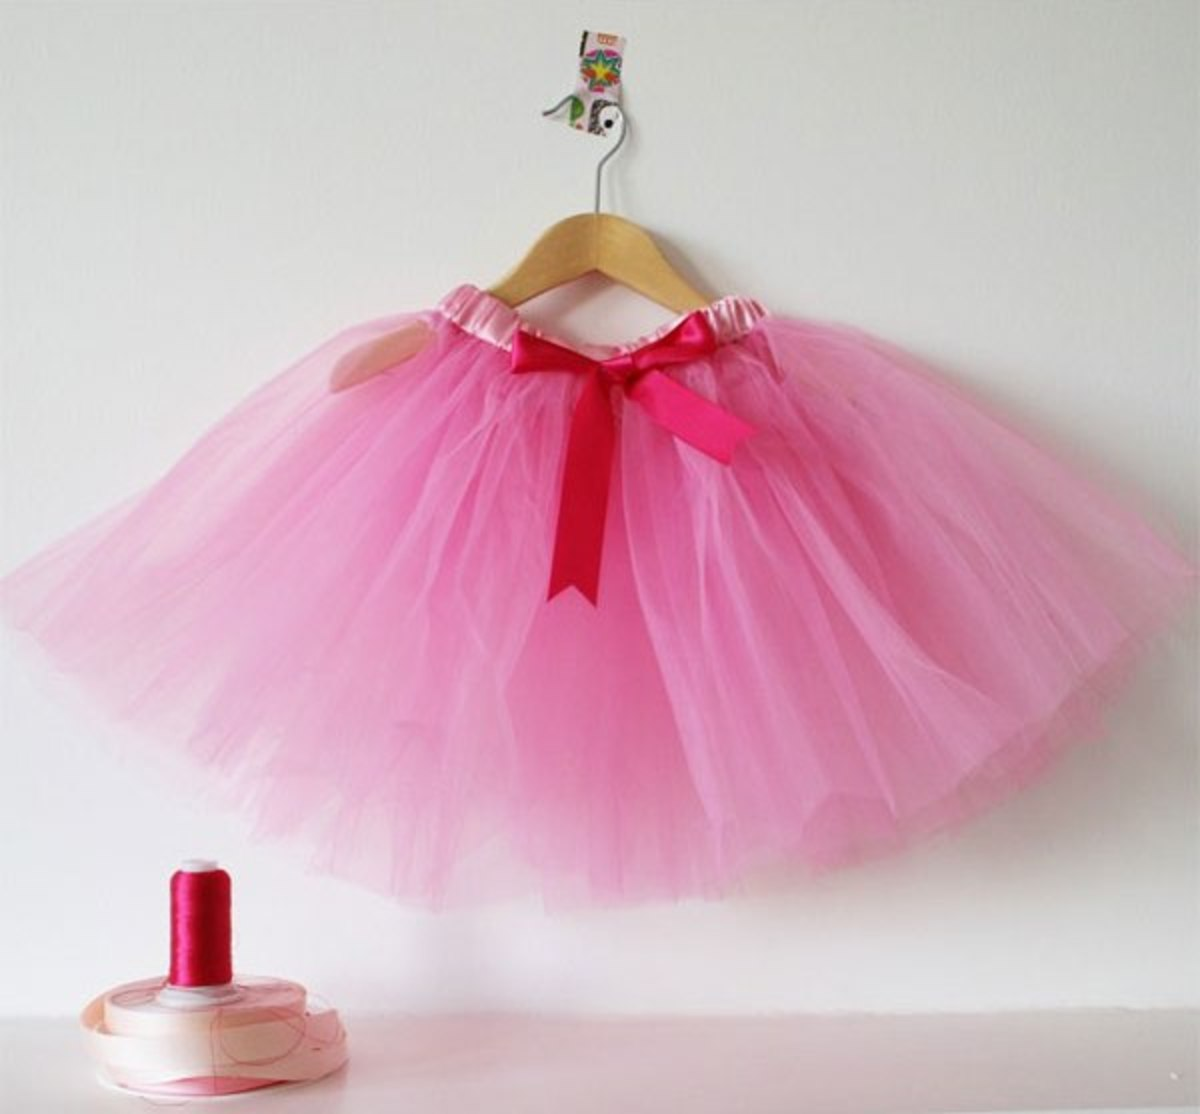 Sew-on Tutu. Sewn at the waist, then string in the elastic or ribbon.